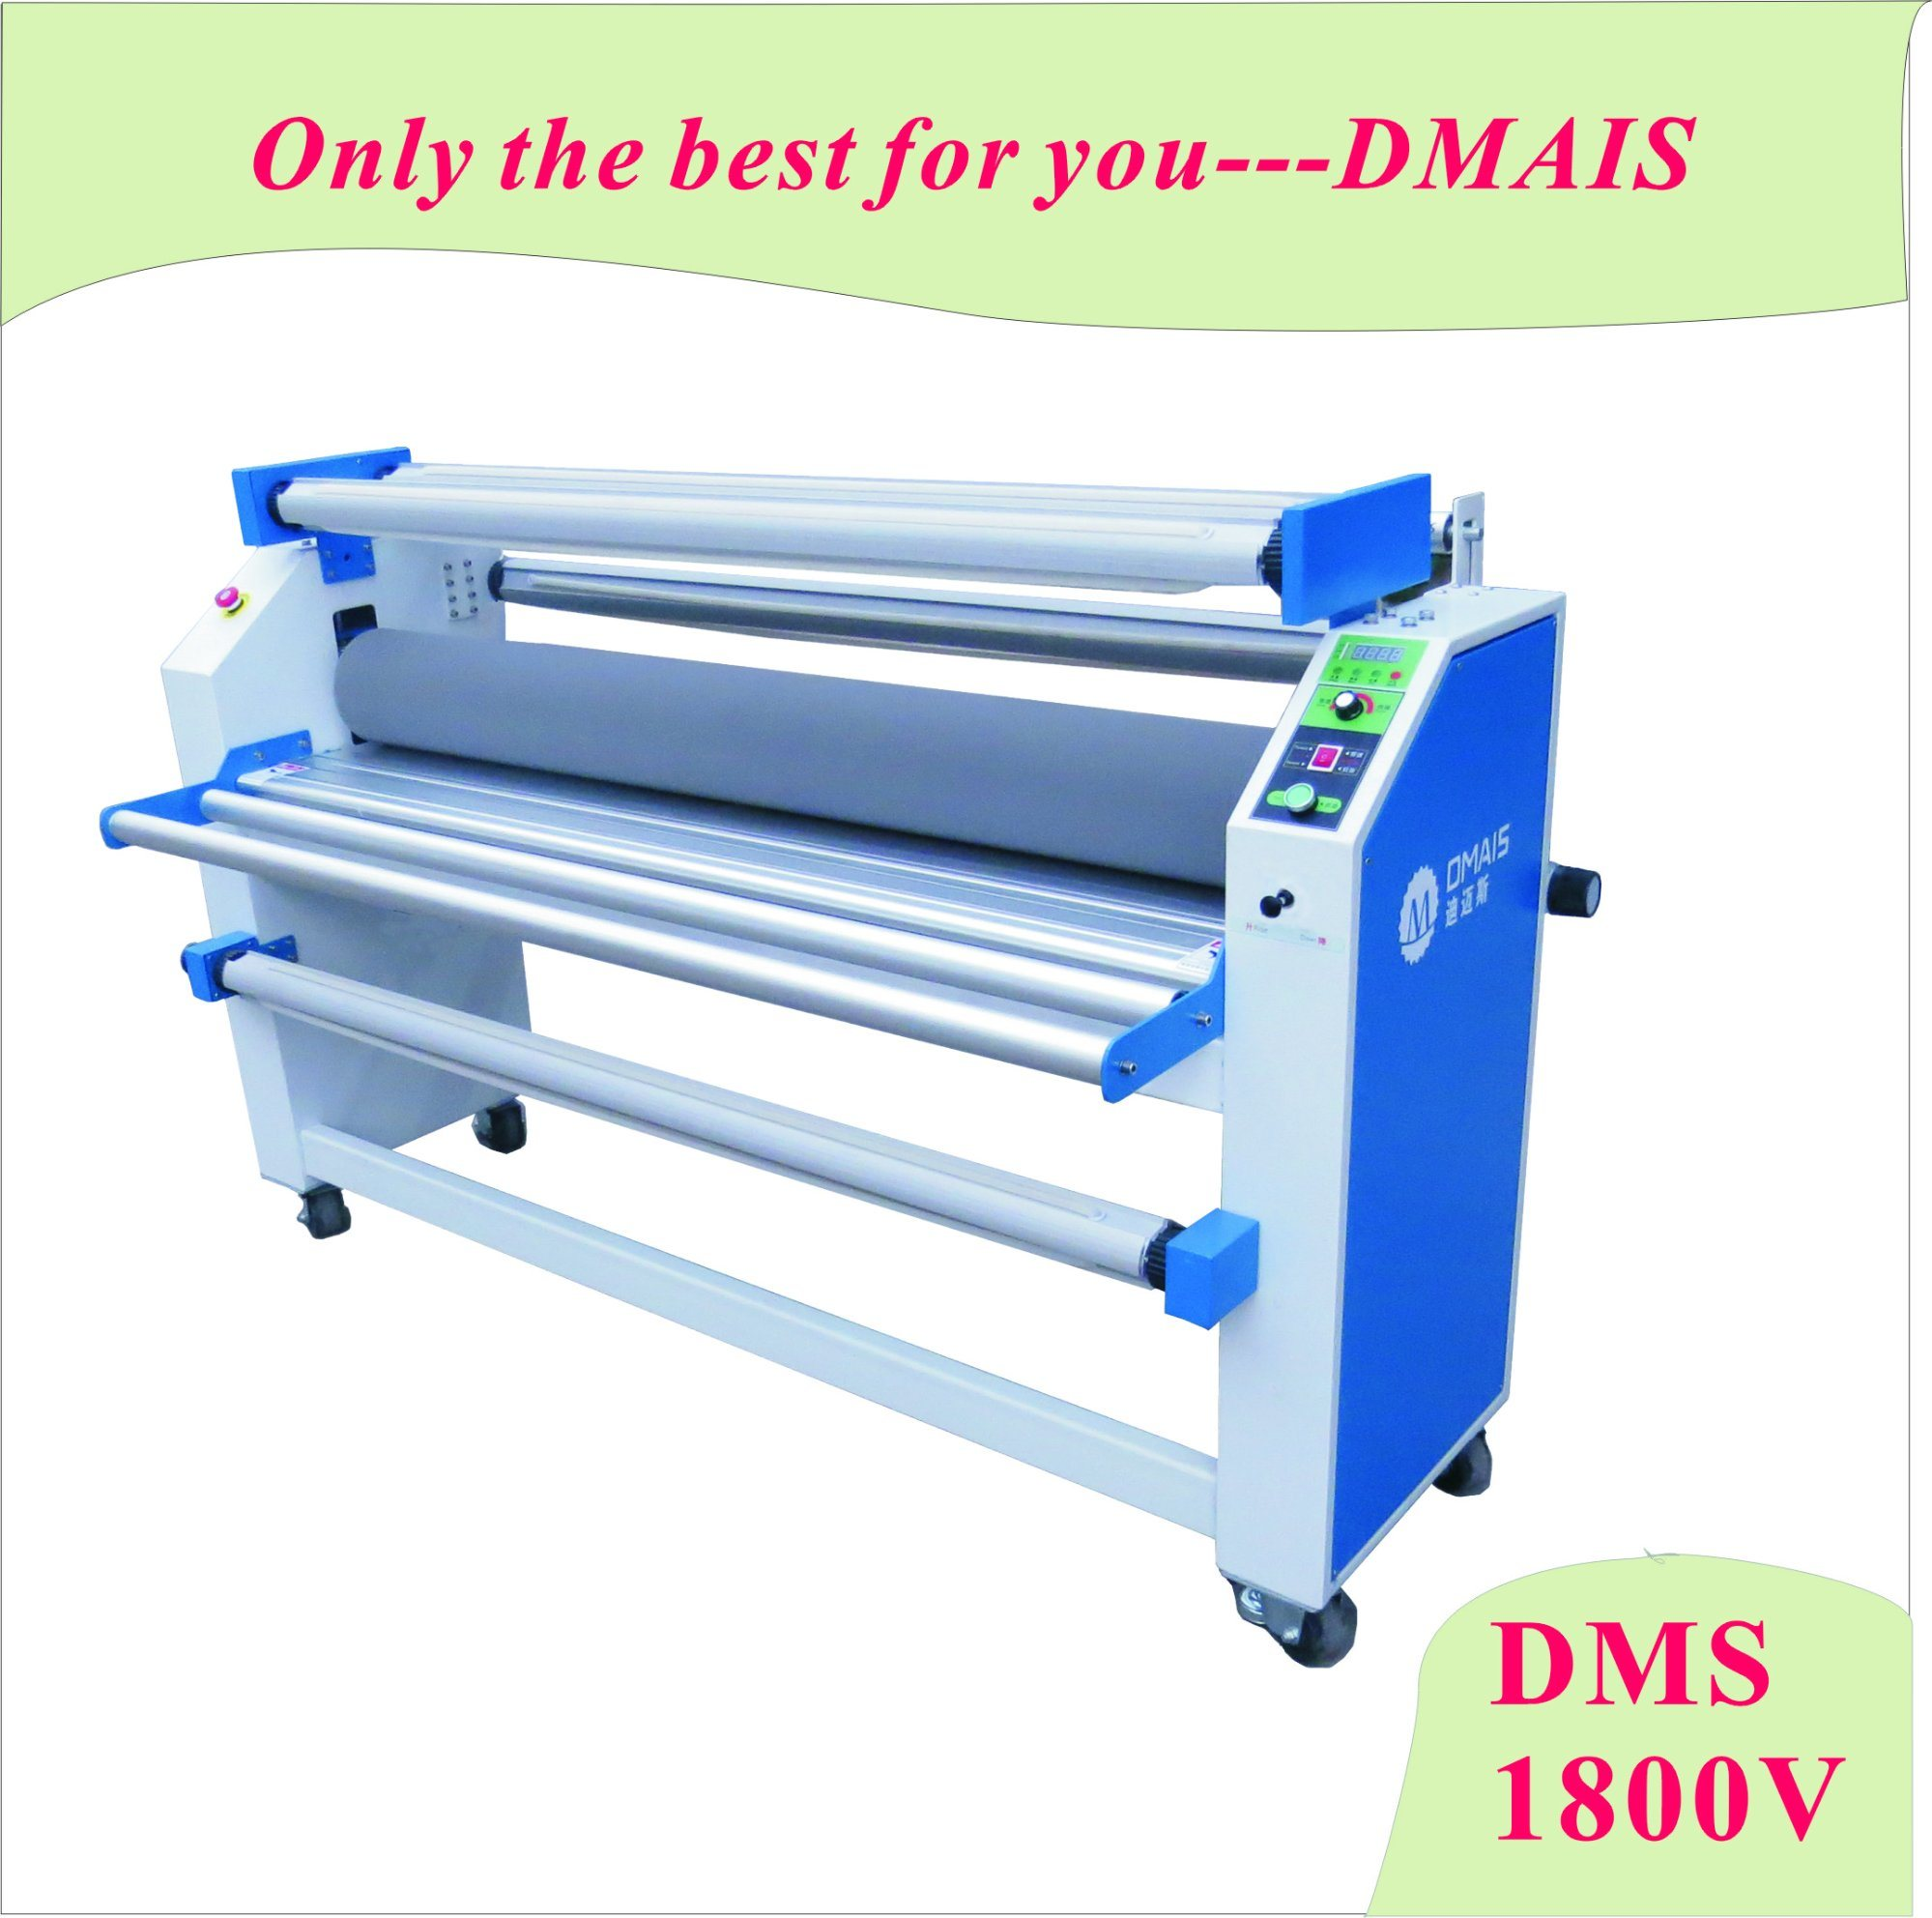 DMS-1800V Automatic Linerless Film Lamination for Advertisement